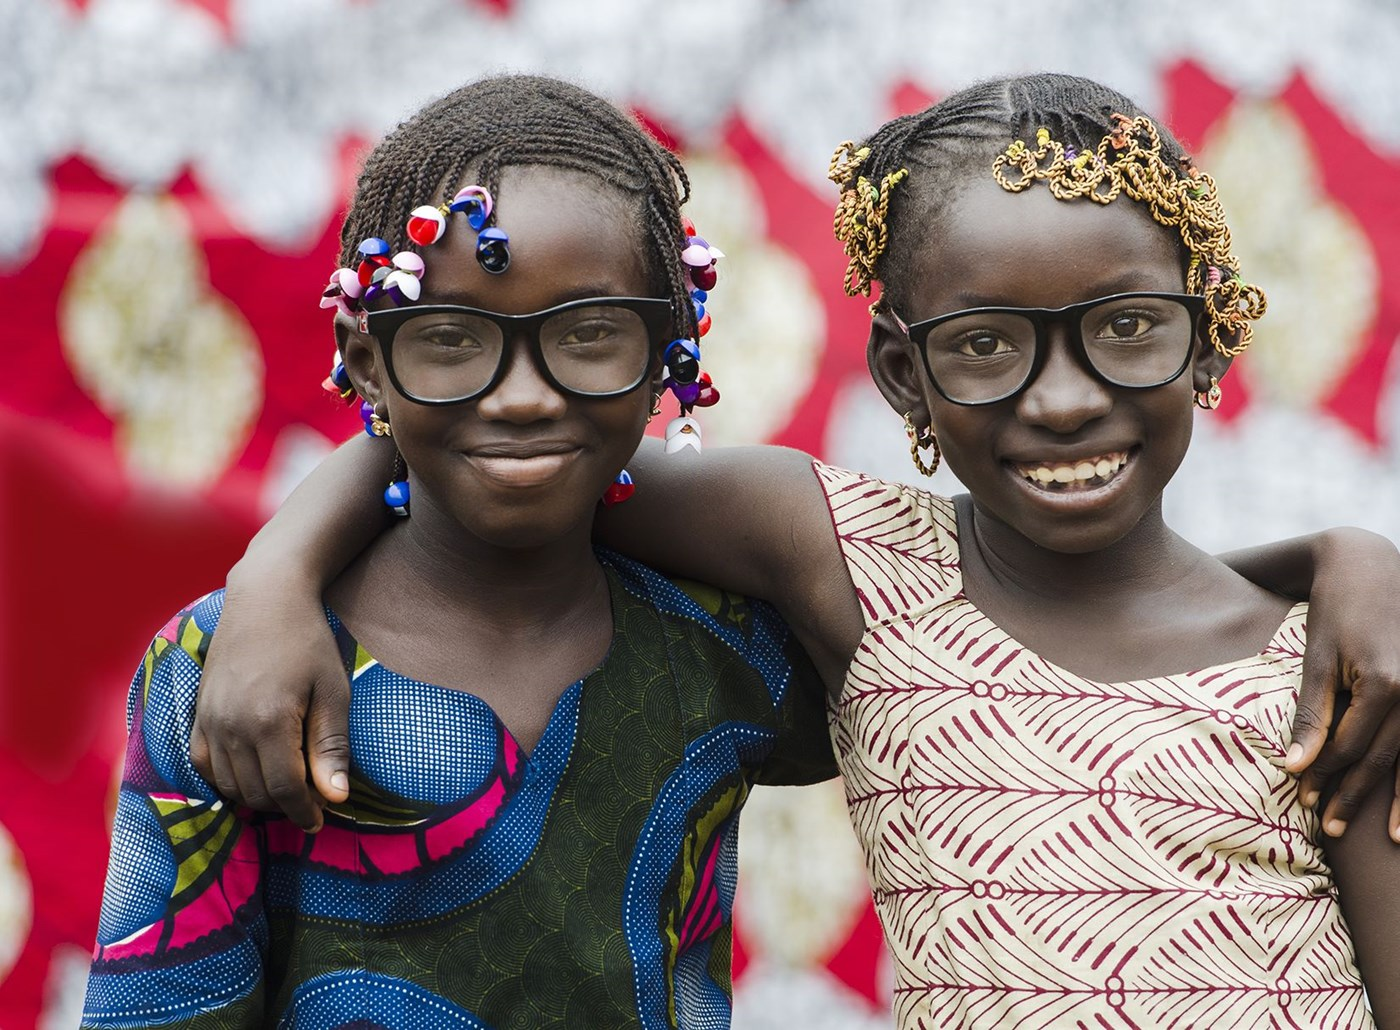 Two girls with braids embracing each other wearing eye glasses with Hoya Vision lenses